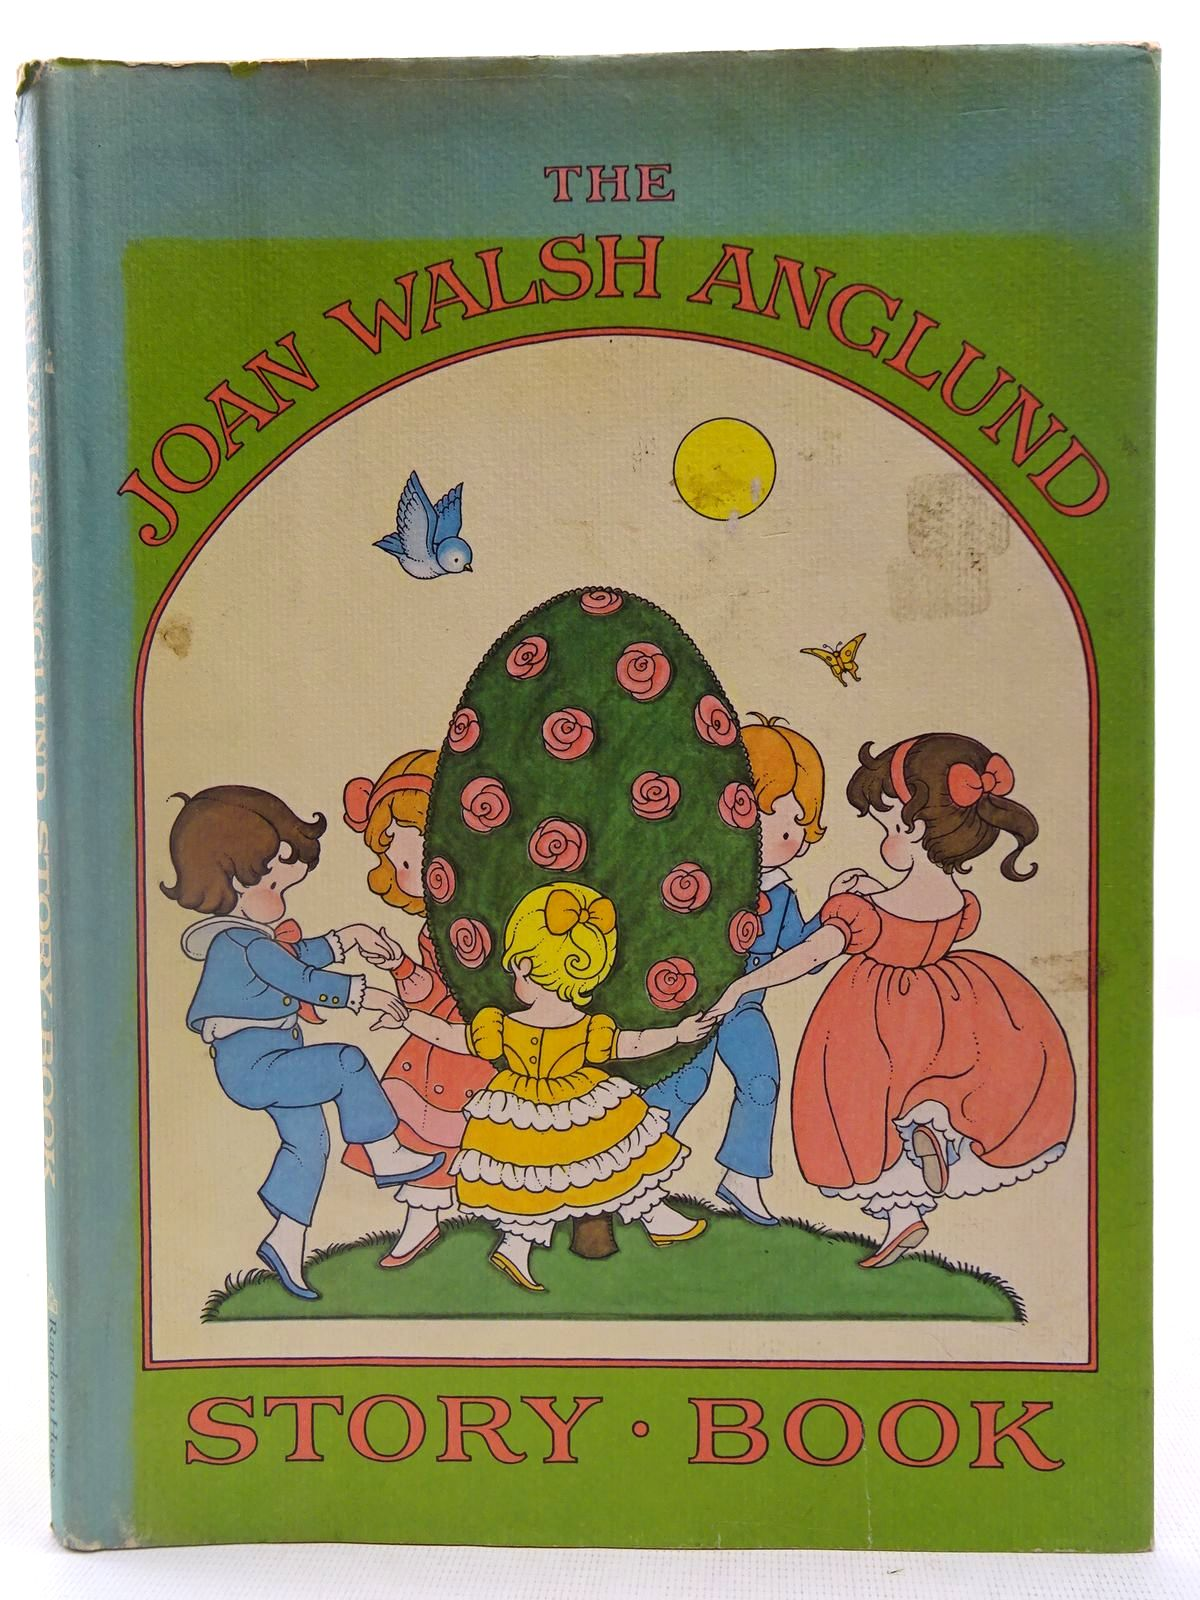 Photo of THE JOAN WALSH ANGLUND STORY BOOK written by Anglund, Joan Walsh illustrated by Anglund, Joan Walsh published by Random House (STOCK CODE: 2127699)  for sale by Stella & Rose's Books